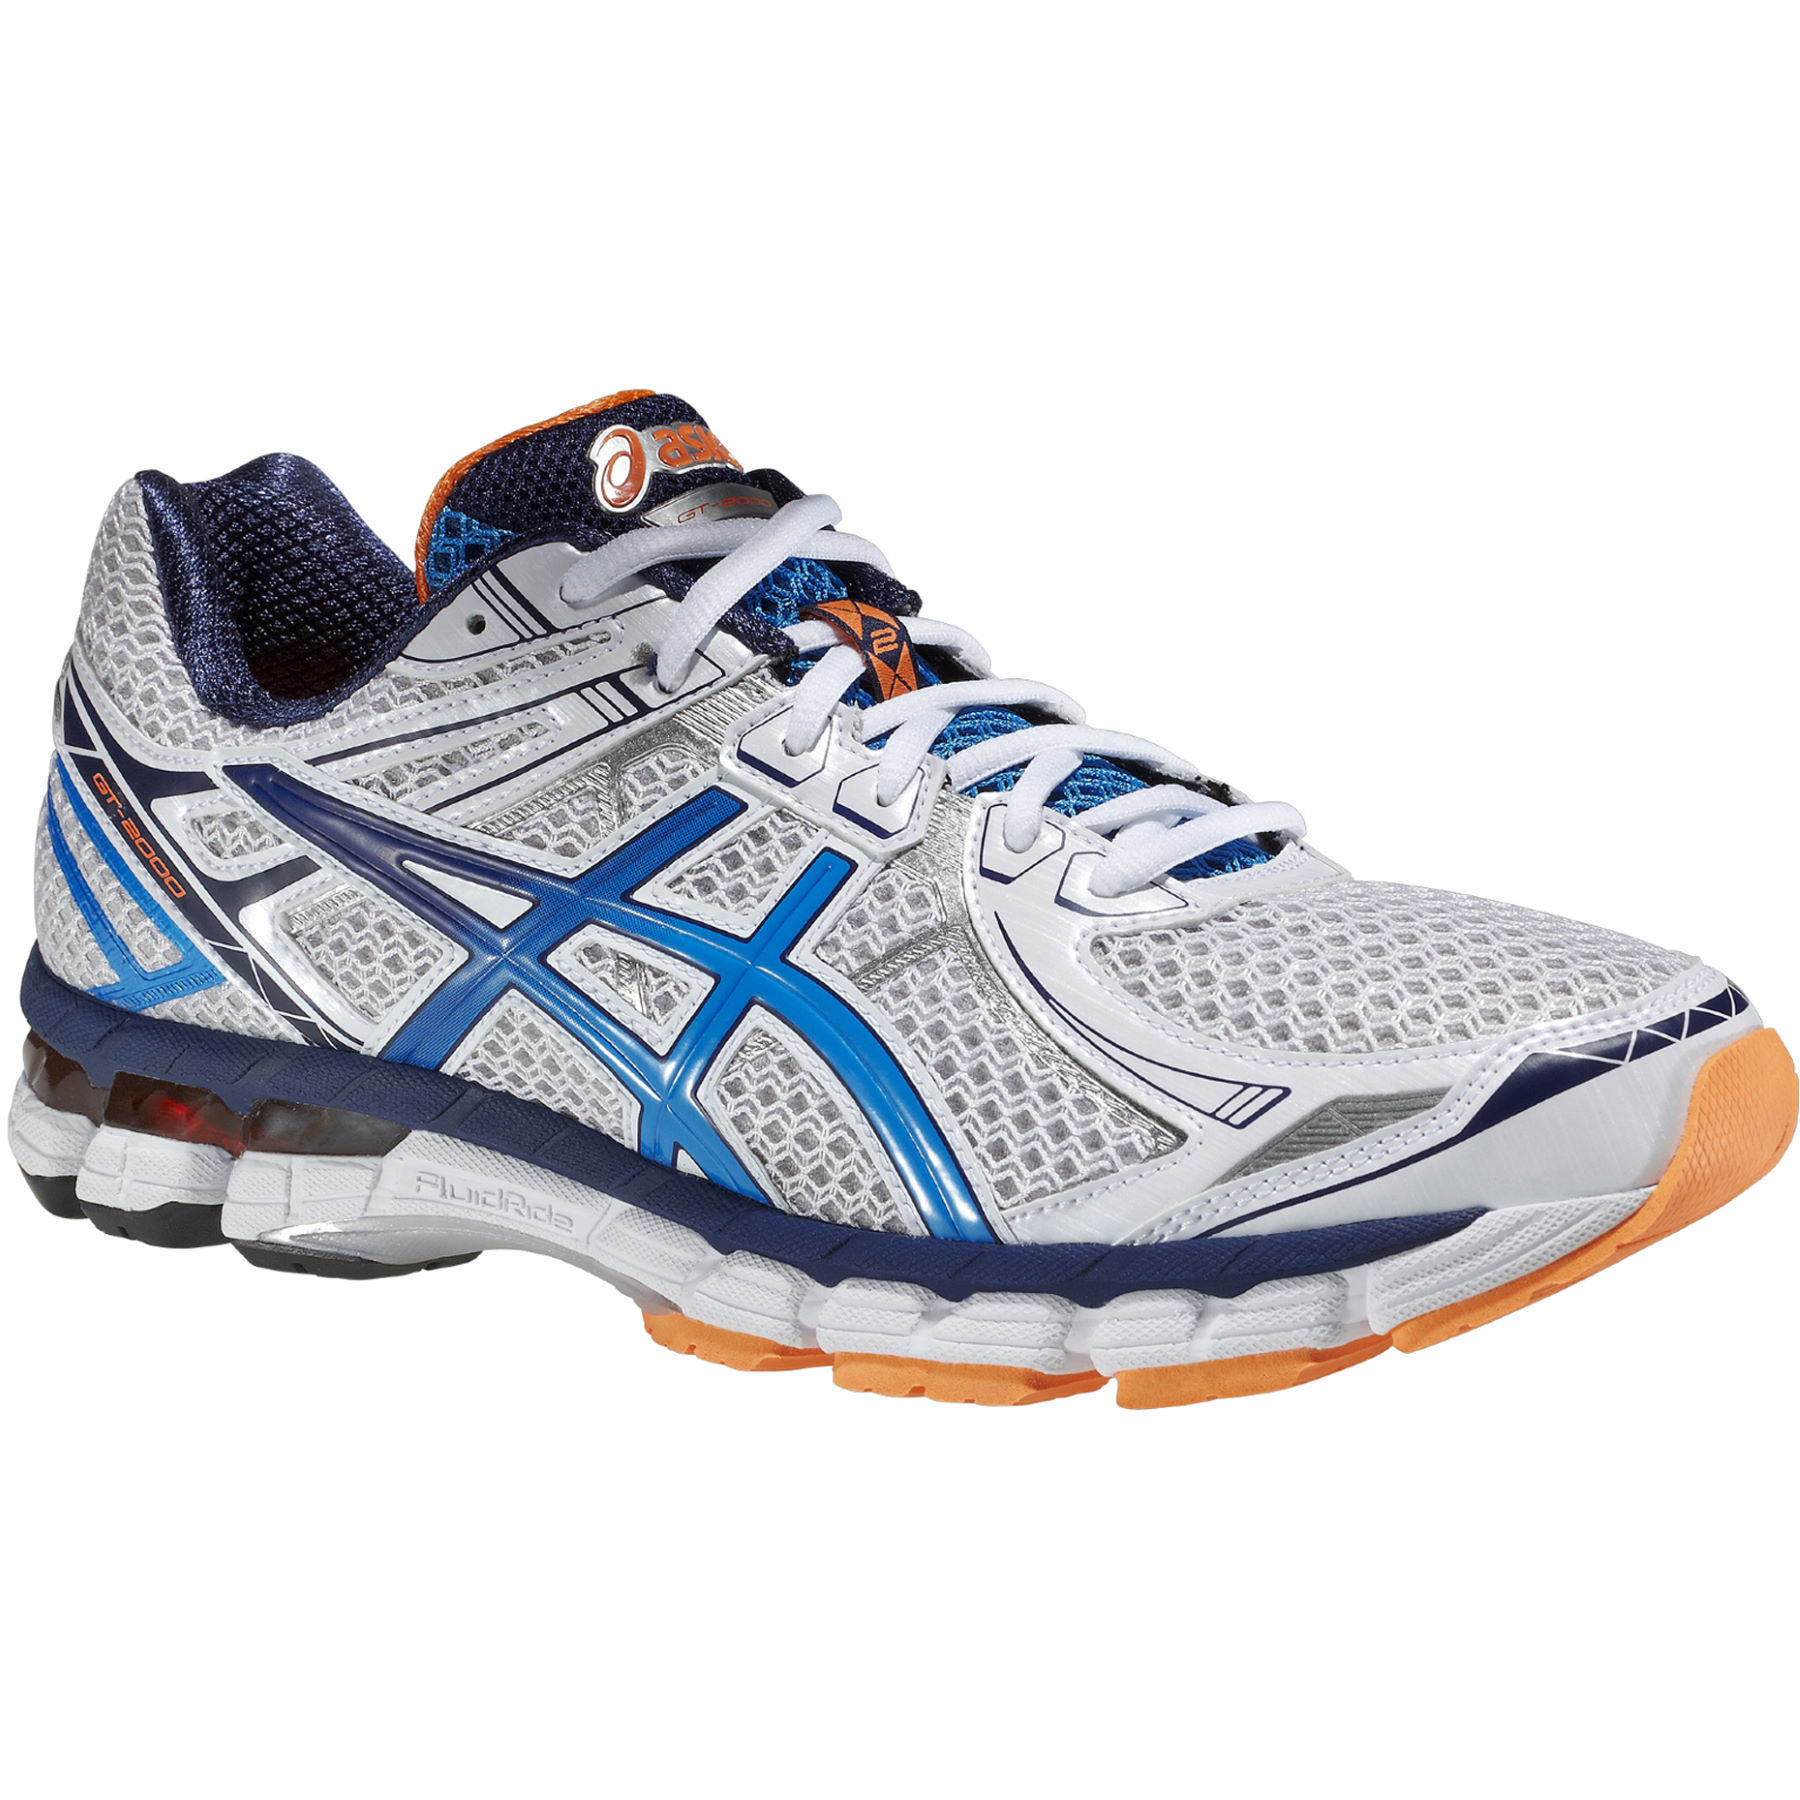 wiggle asics gt 2000 2 shoes aw14 stability running shoes. Black Bedroom Furniture Sets. Home Design Ideas